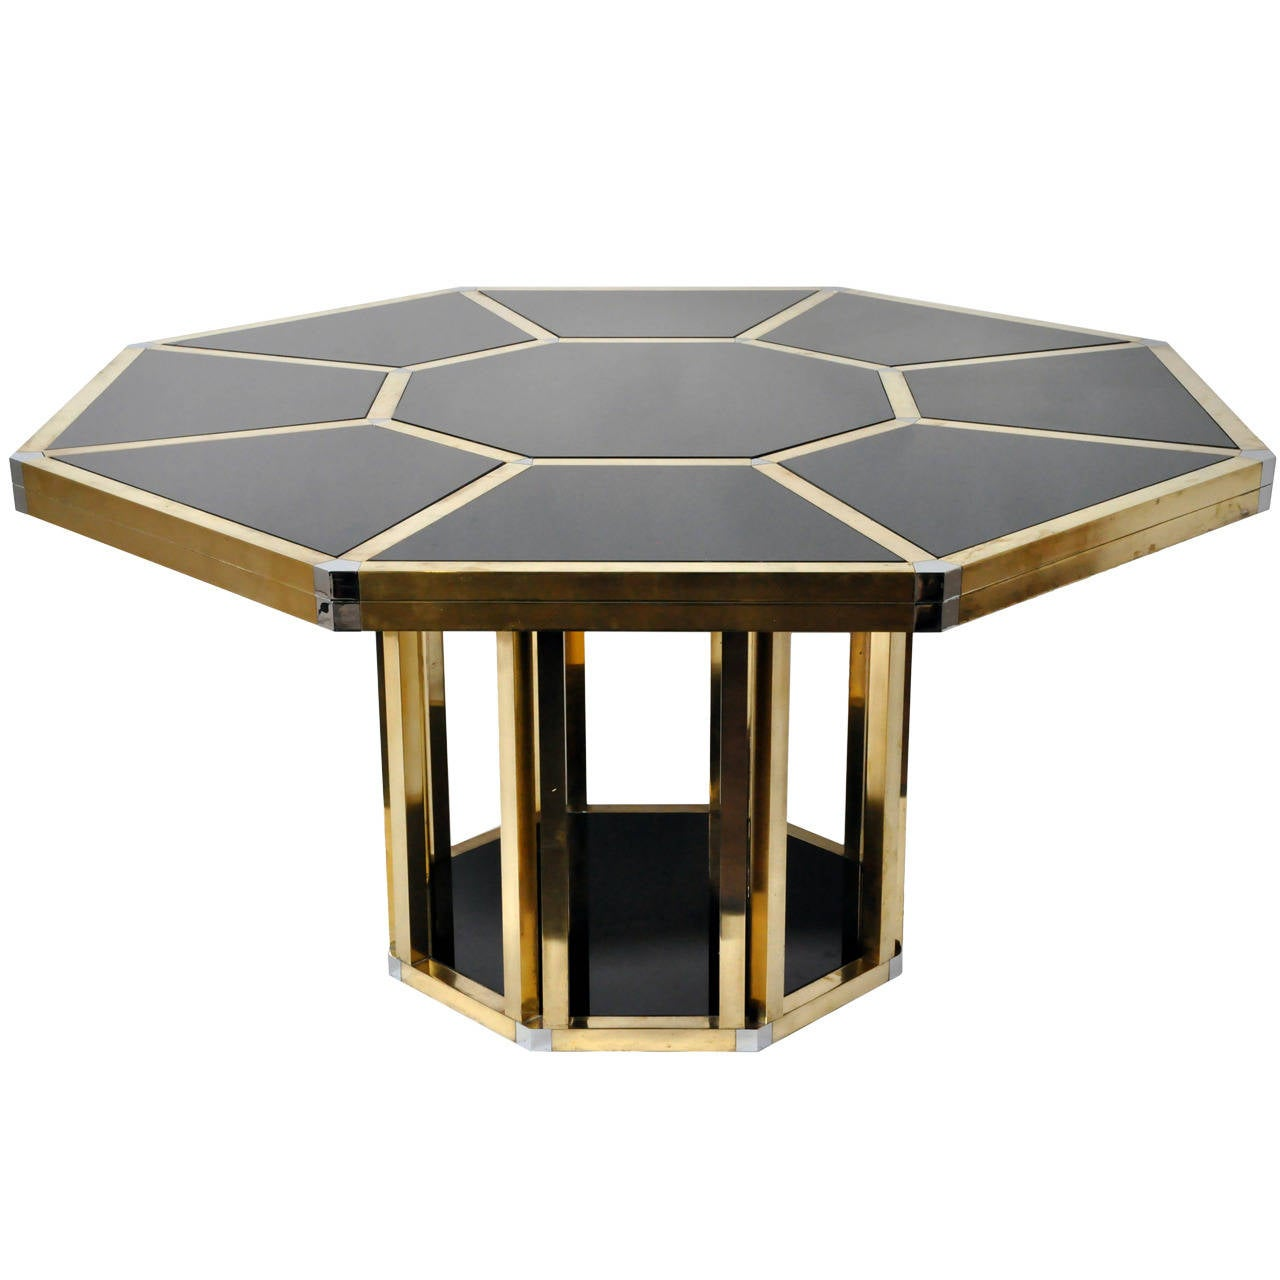 Octagonal table in the style of gabriella crespi at 1stdibs for Furniture centre table